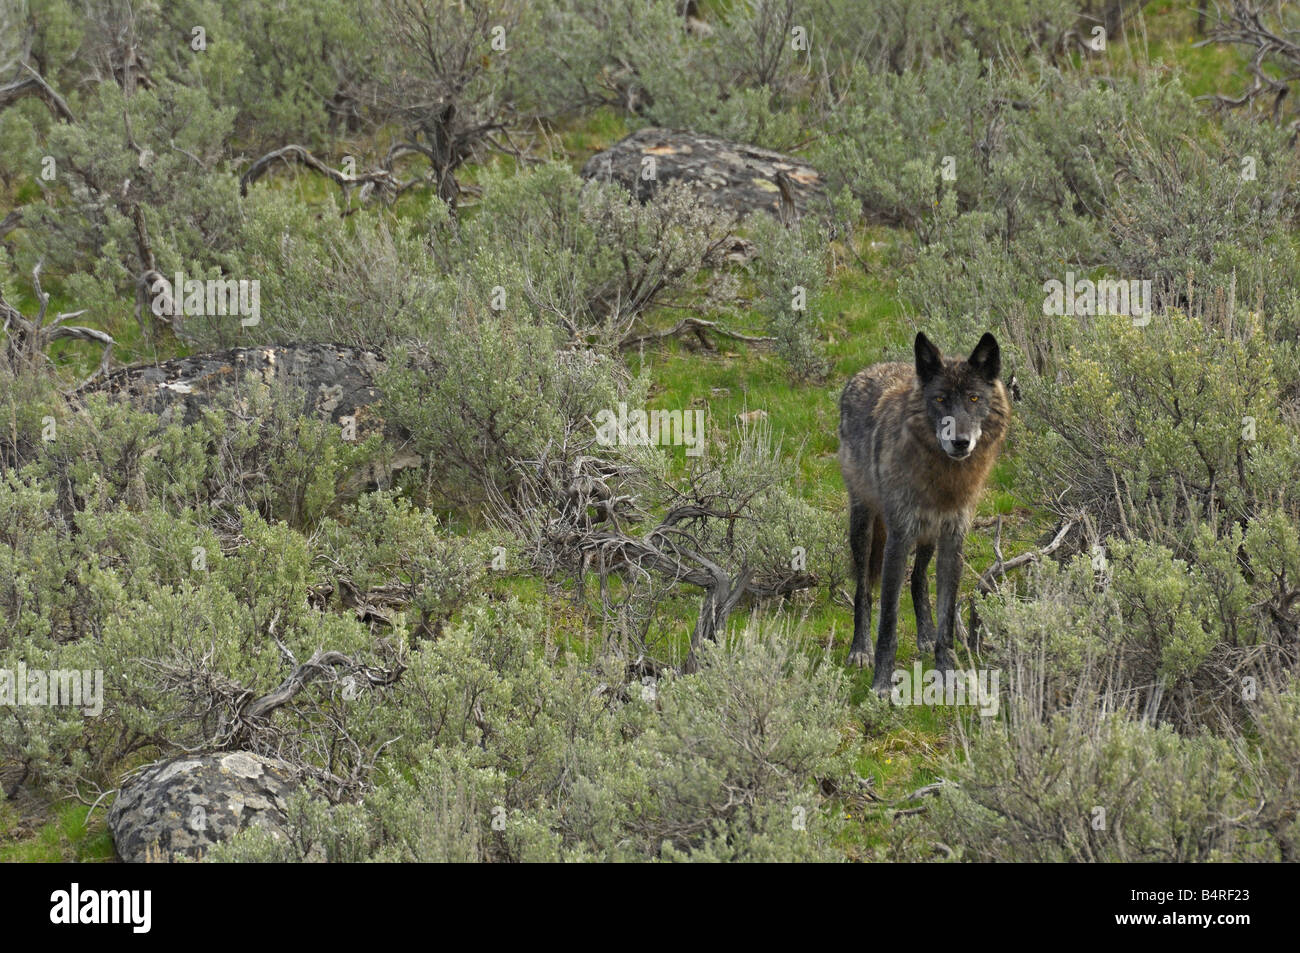 Black Wolf in the Sage - Stock Image